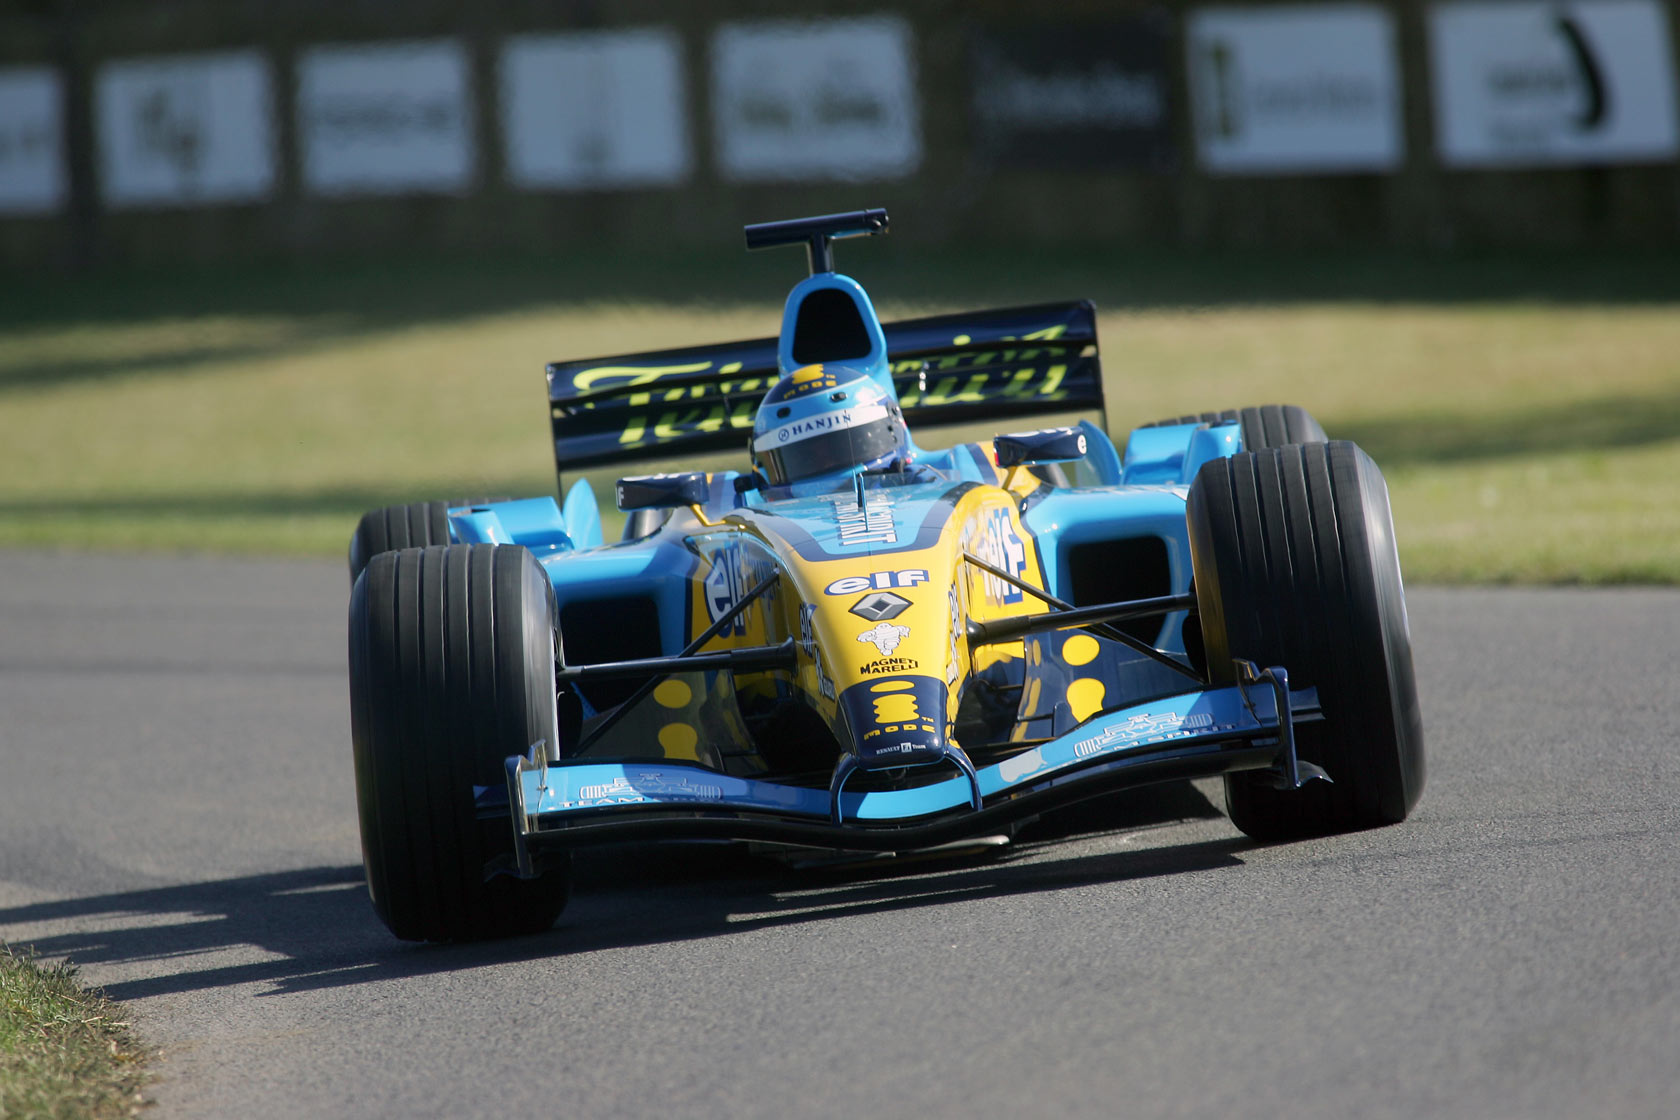 Renault R 25 photo 18